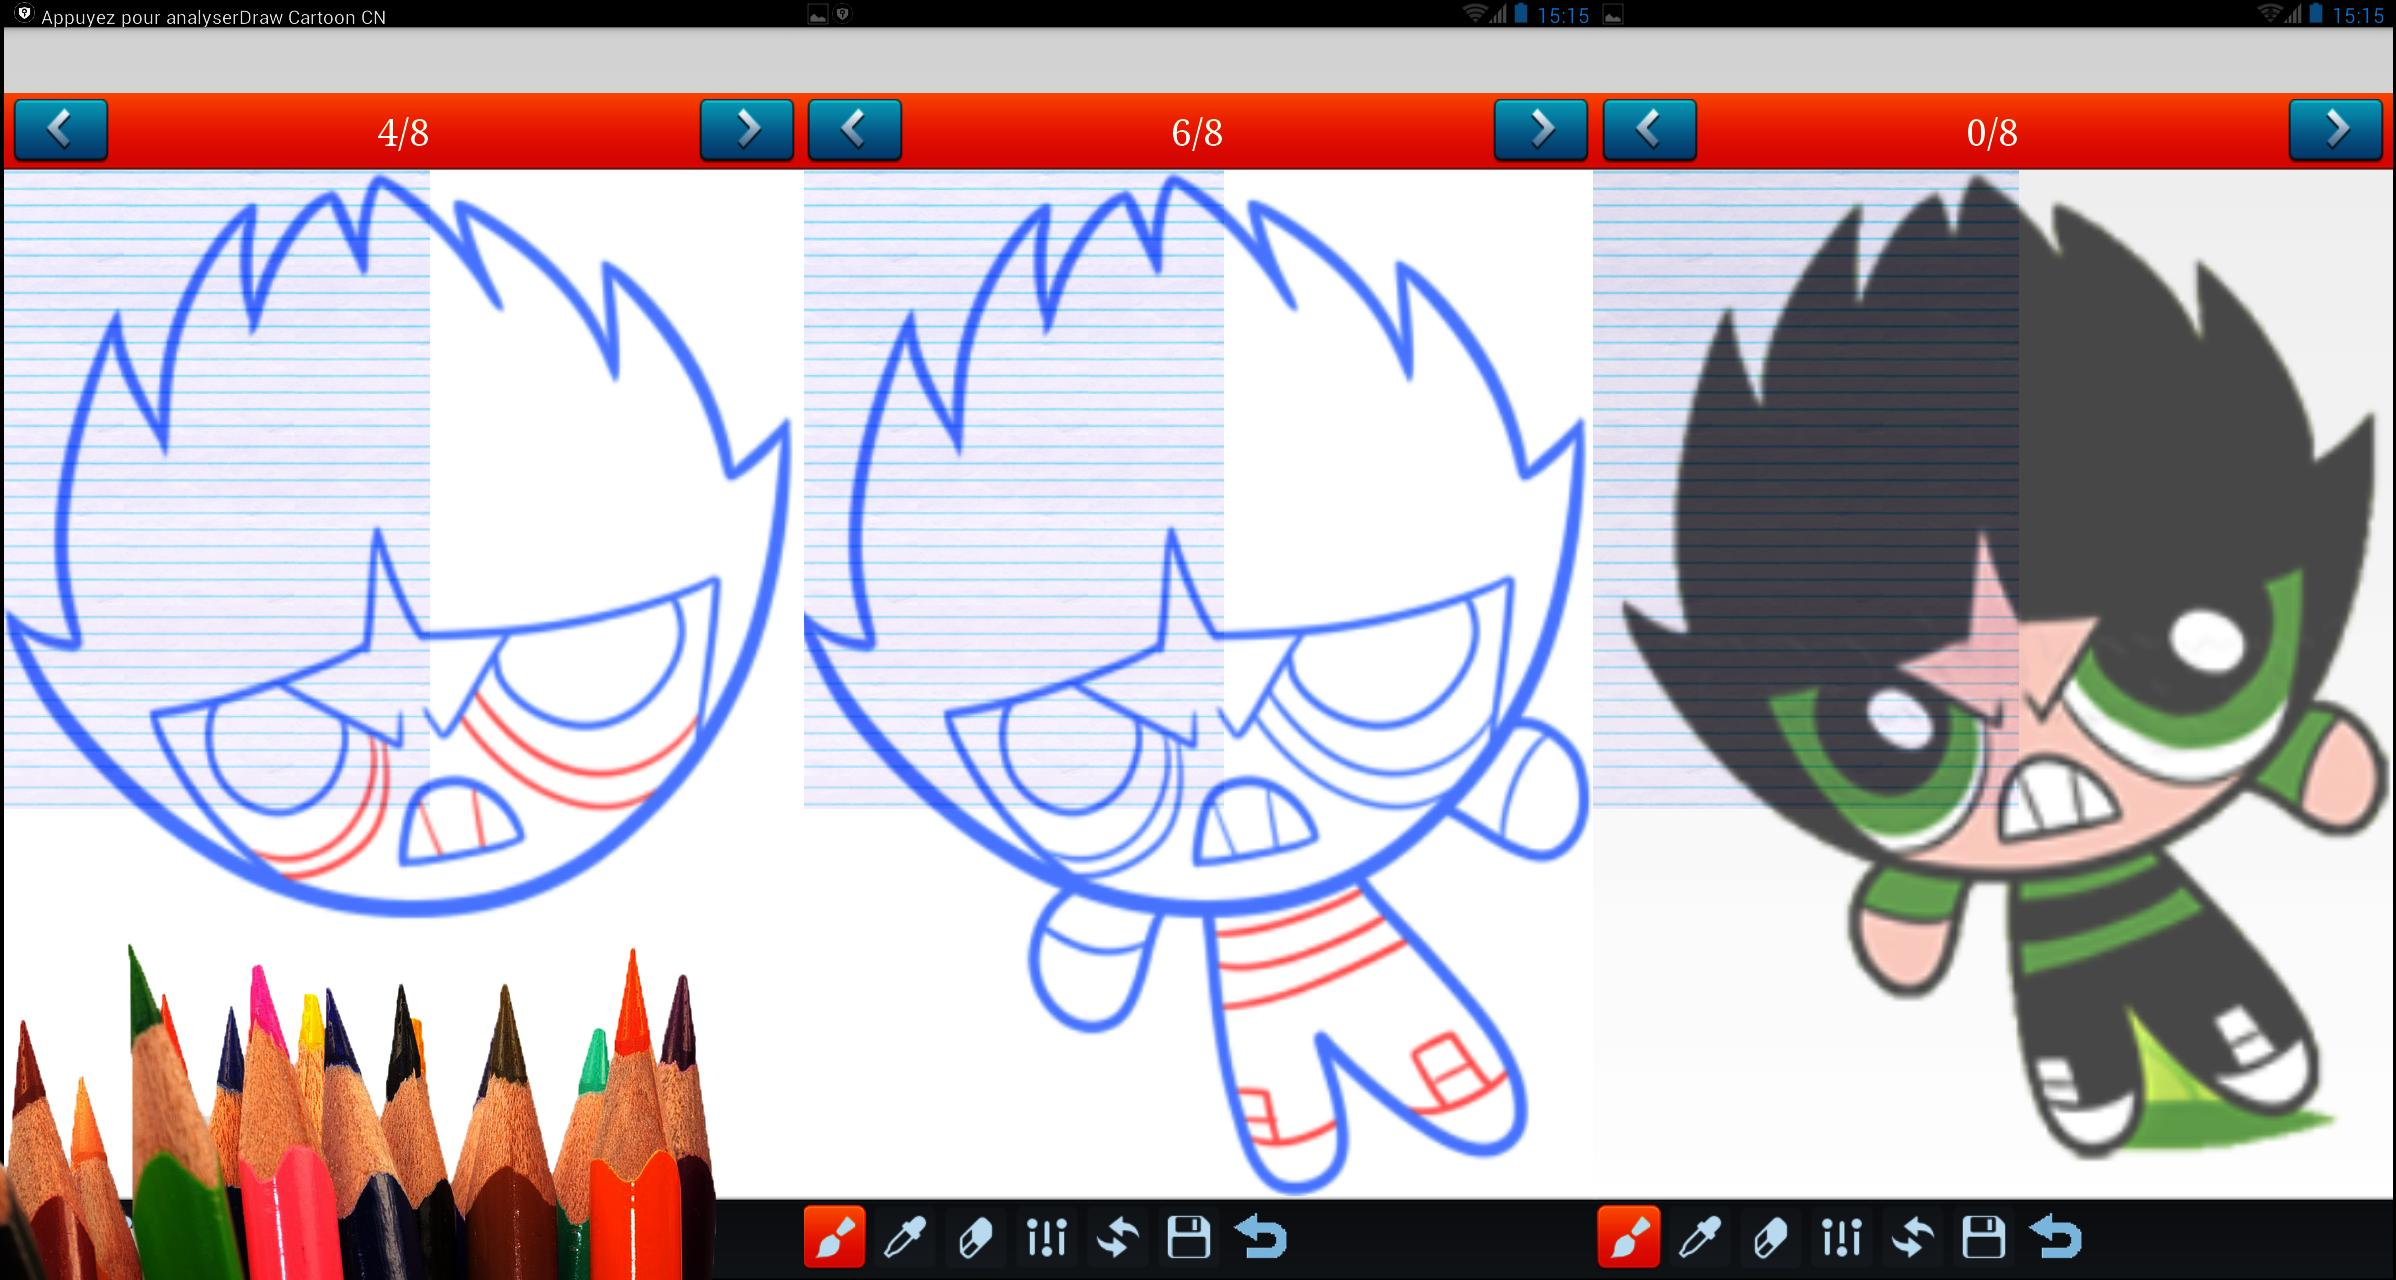 Drawing Anime Cartoon Network for Android - APK Download